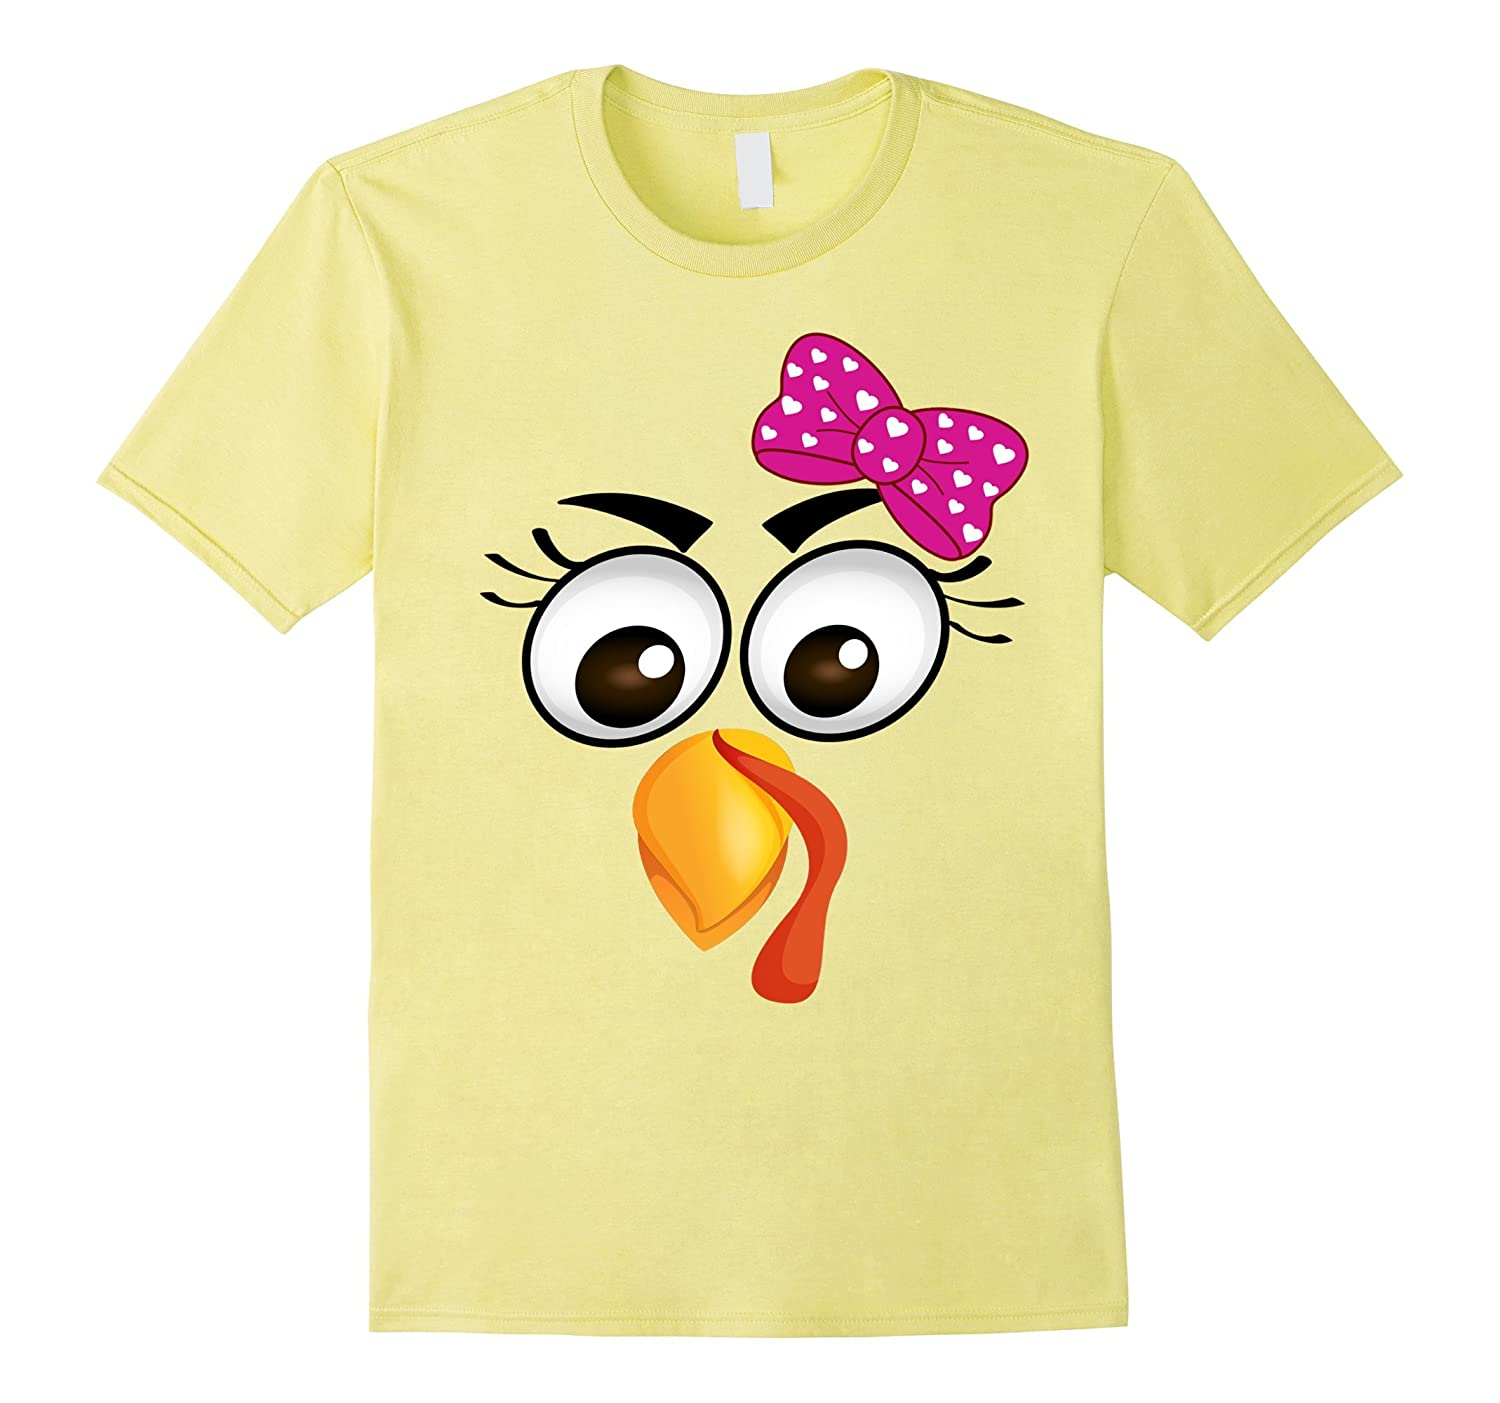 89a4f20b Turkey Face Girl Pink Bow T Shirt-ANZ ⋆ Anztshirt